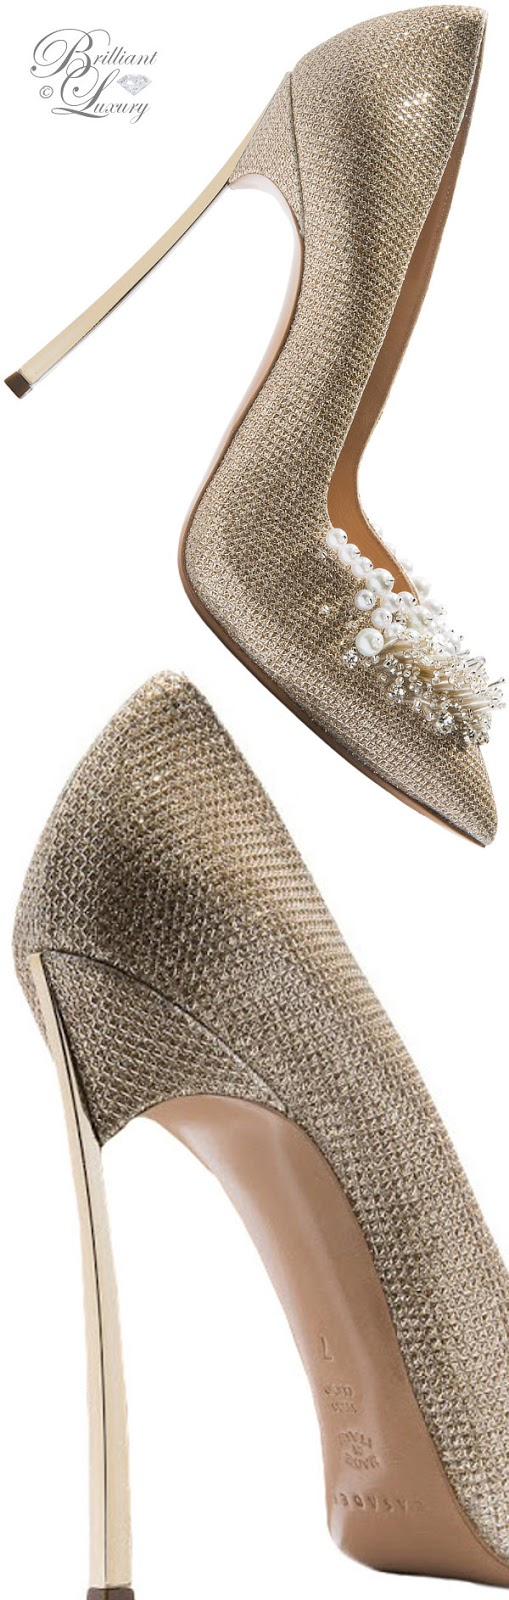 Brilliant Luxury ♦ Fall in ~ Casadei Blade high heels in gold with strass ornament